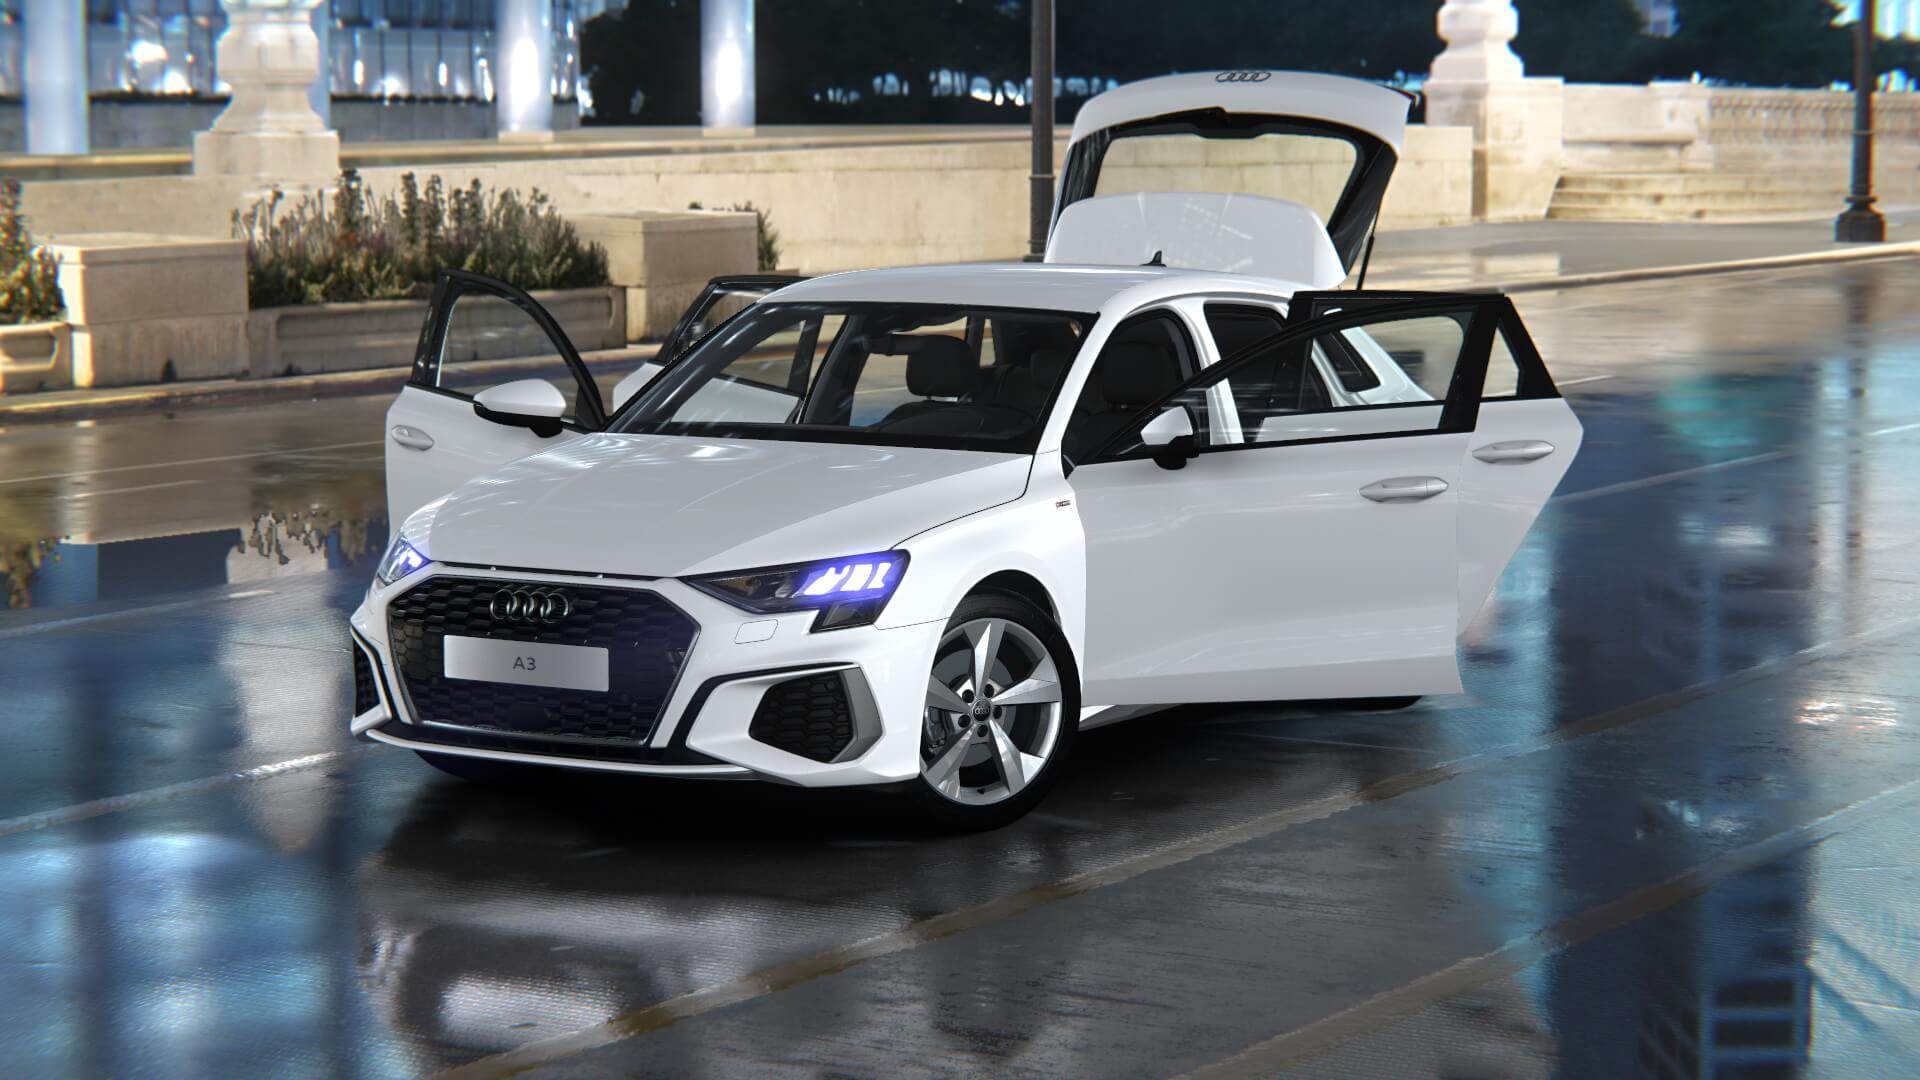 2020 Audi A3 Sportback S Line With Loads Of Extras Filmed At Dealer